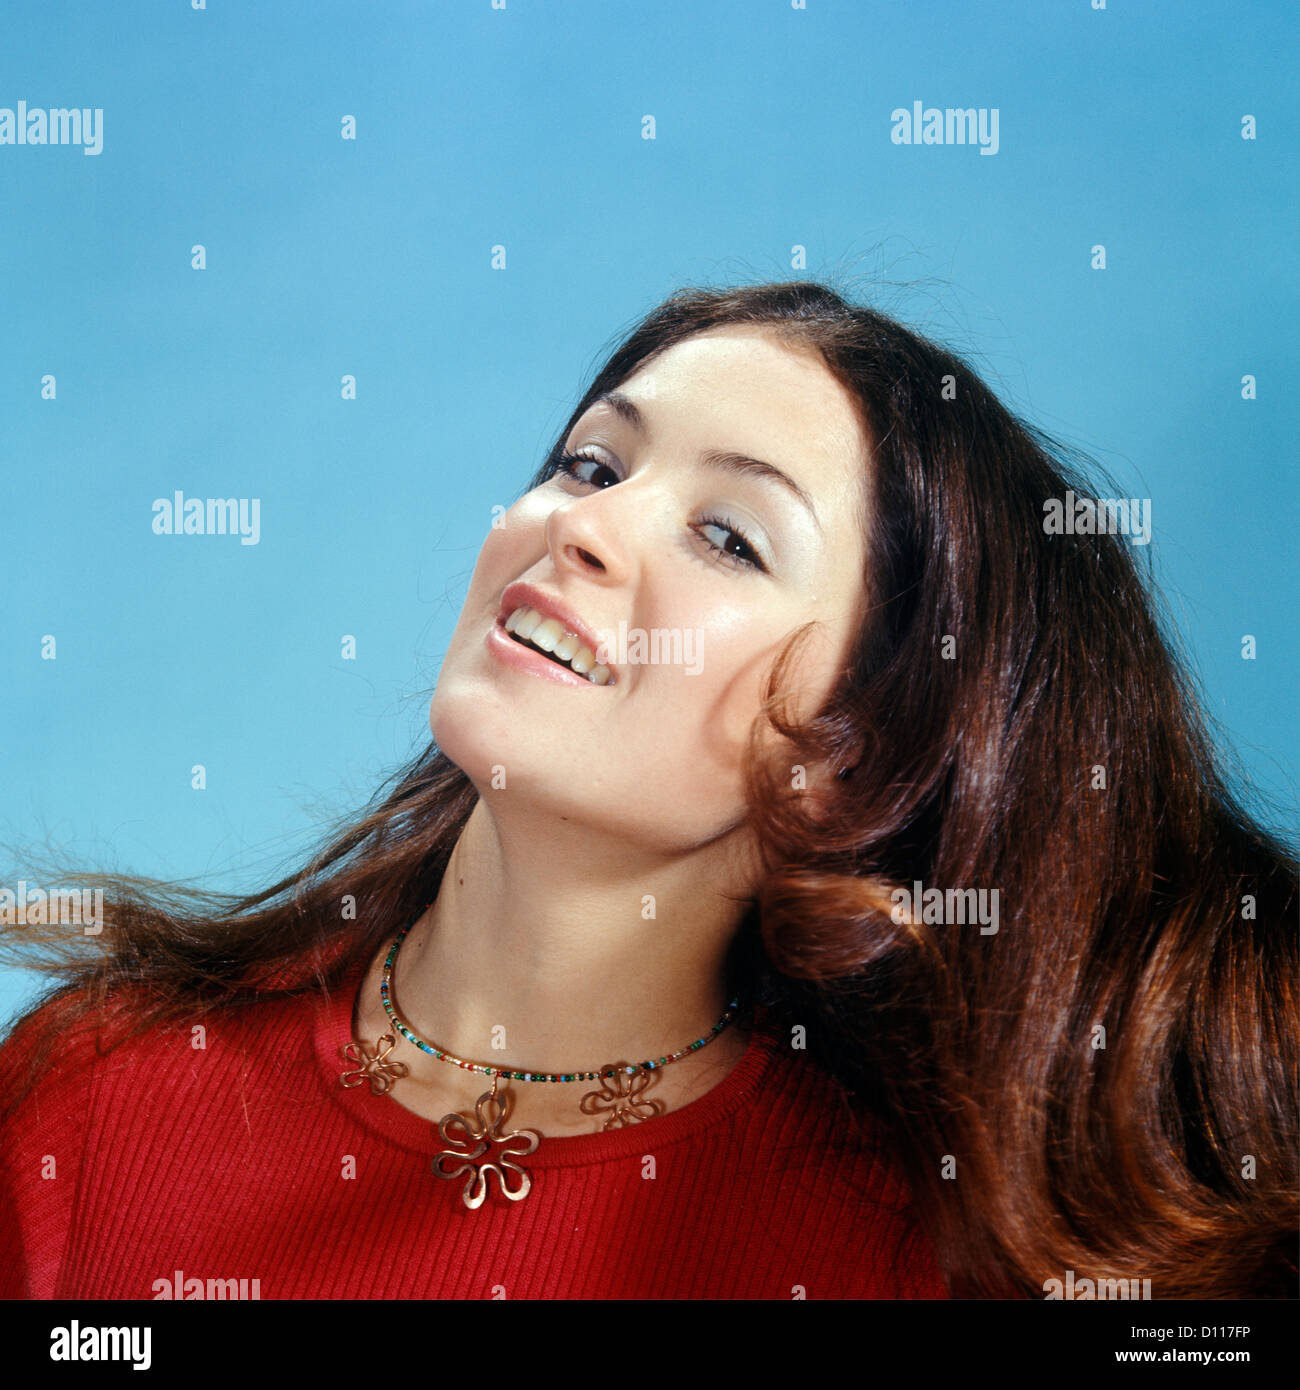 1960s 1970s PORTRAIT OF SMILING WOMAN TOSSING BACK HER LONG BROWN HAIR WEARING RED TOP LOOKING AT CAMERA Stock Photo